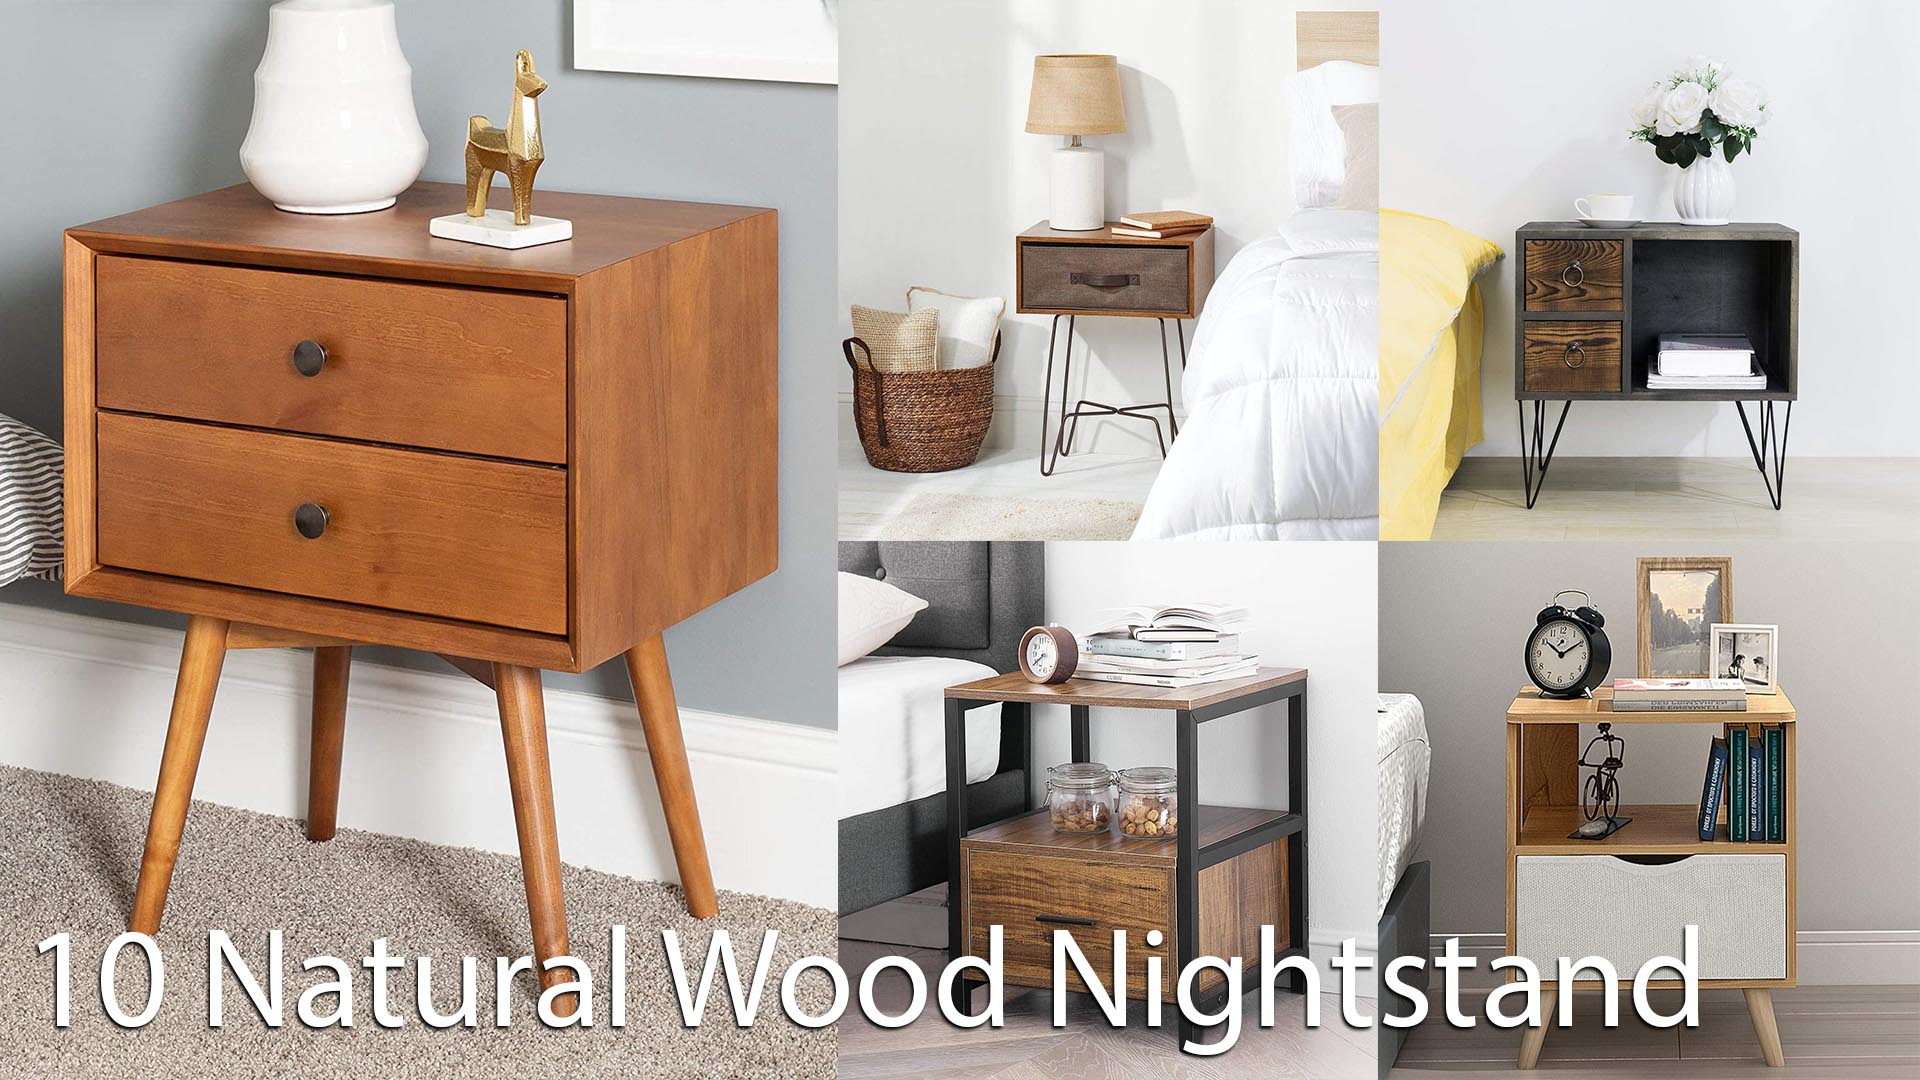 10 Best Natural Wood Nightstand for Your Home